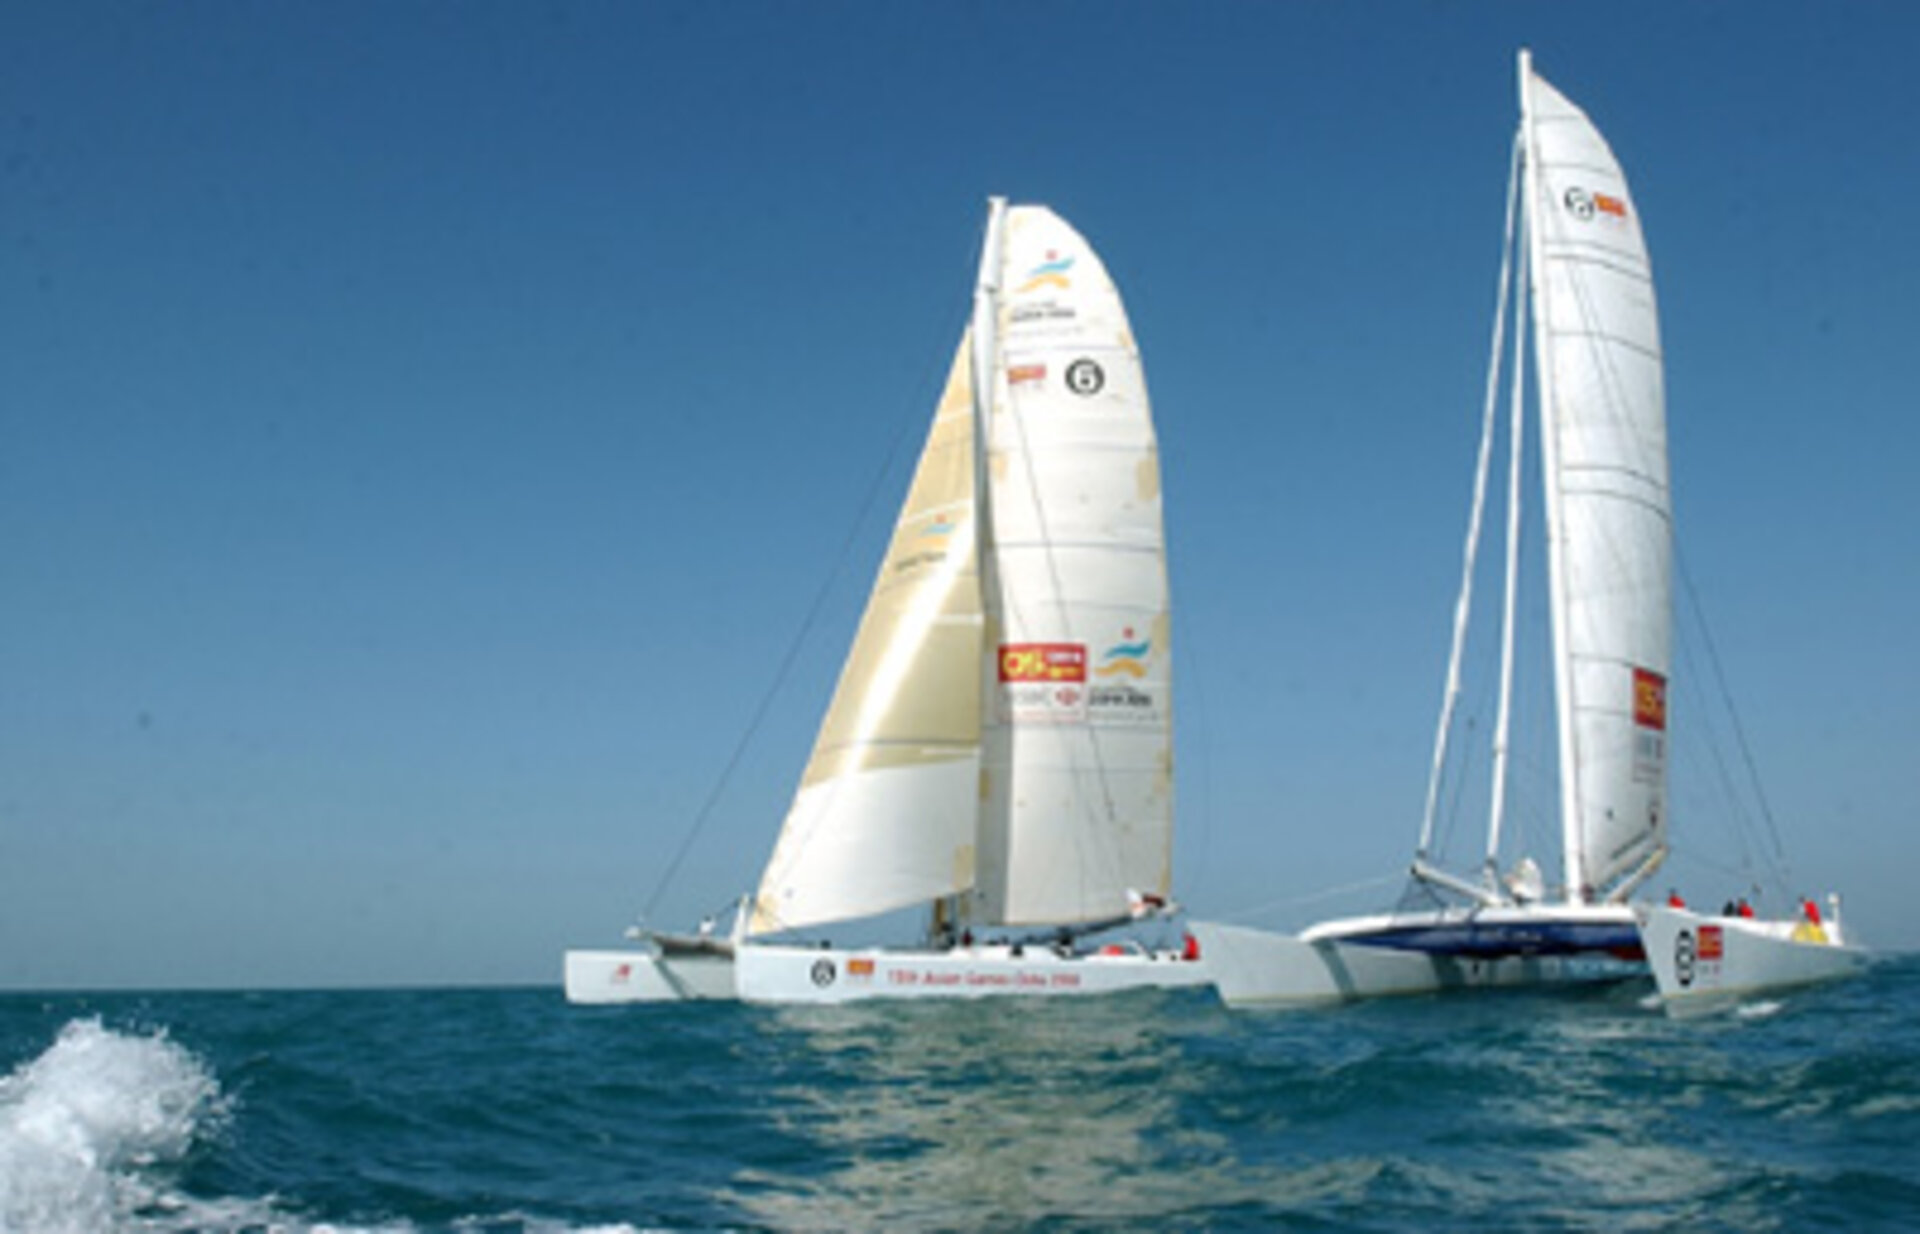 Space technologies have provided novel solution for sailboards